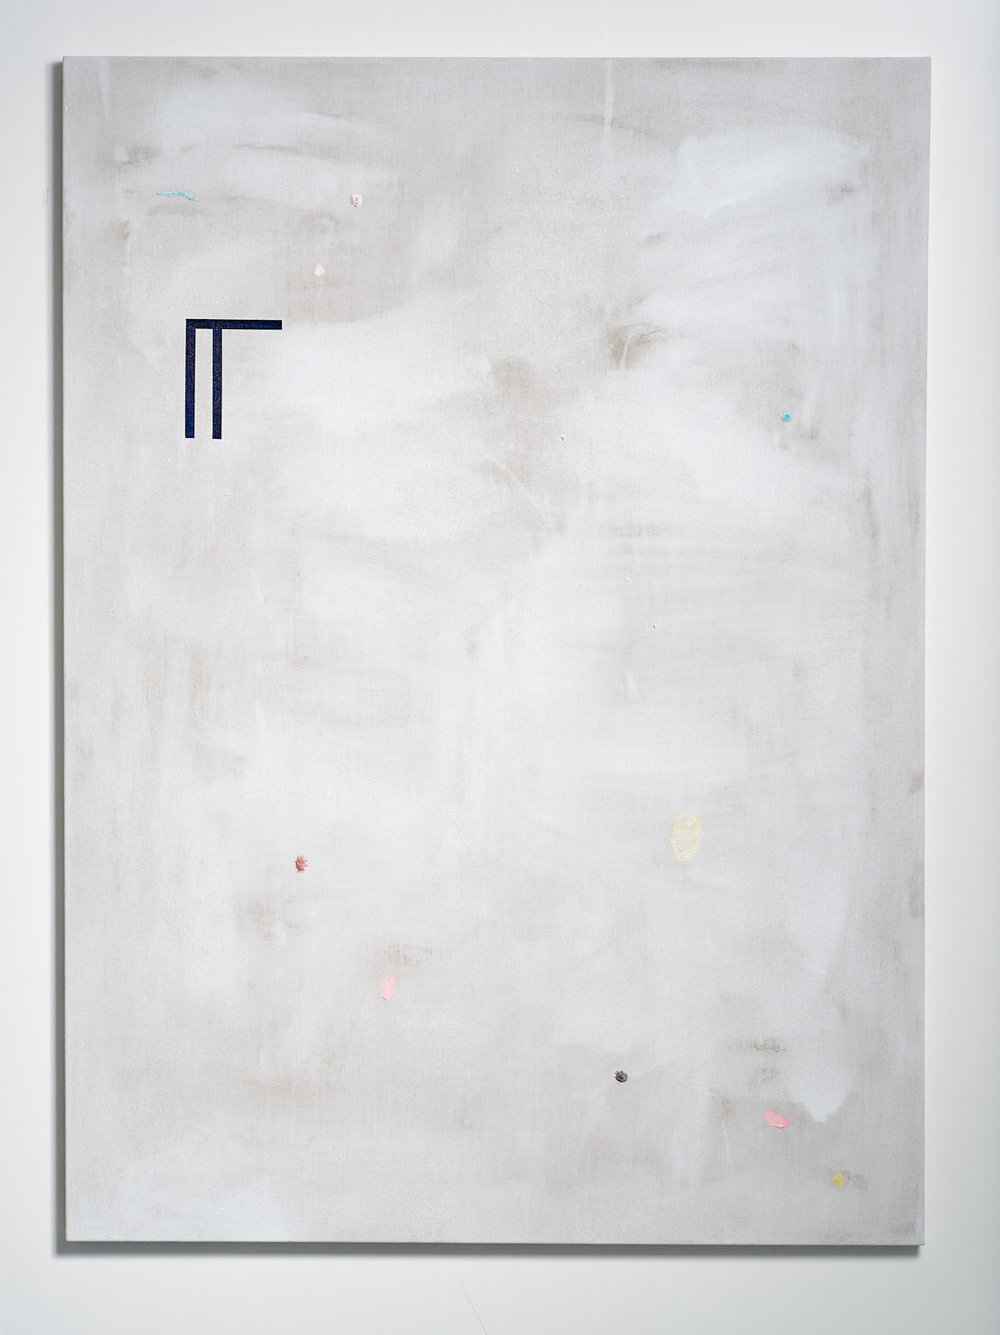 SARAH crowEST  Appliqué #5 (rogue dust embroidery)  2018 linen, gesso, synthetic polymer paint, linen and cotton thread 137.2 × 101.6 cm